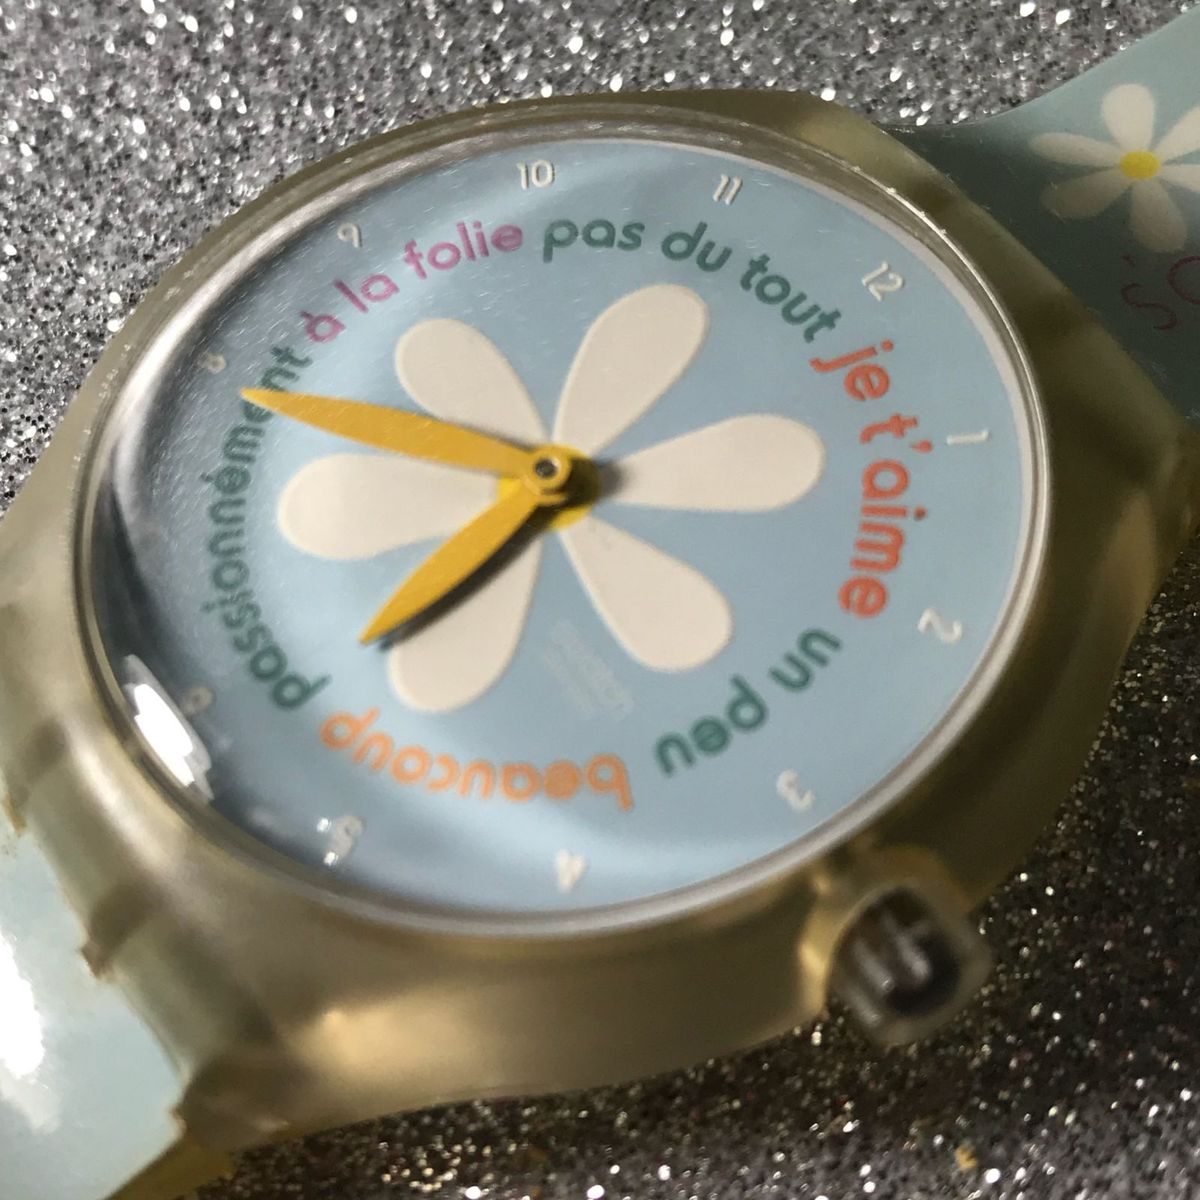 db01aad3062 Swatch Bem Me Quer Mal Me Quer